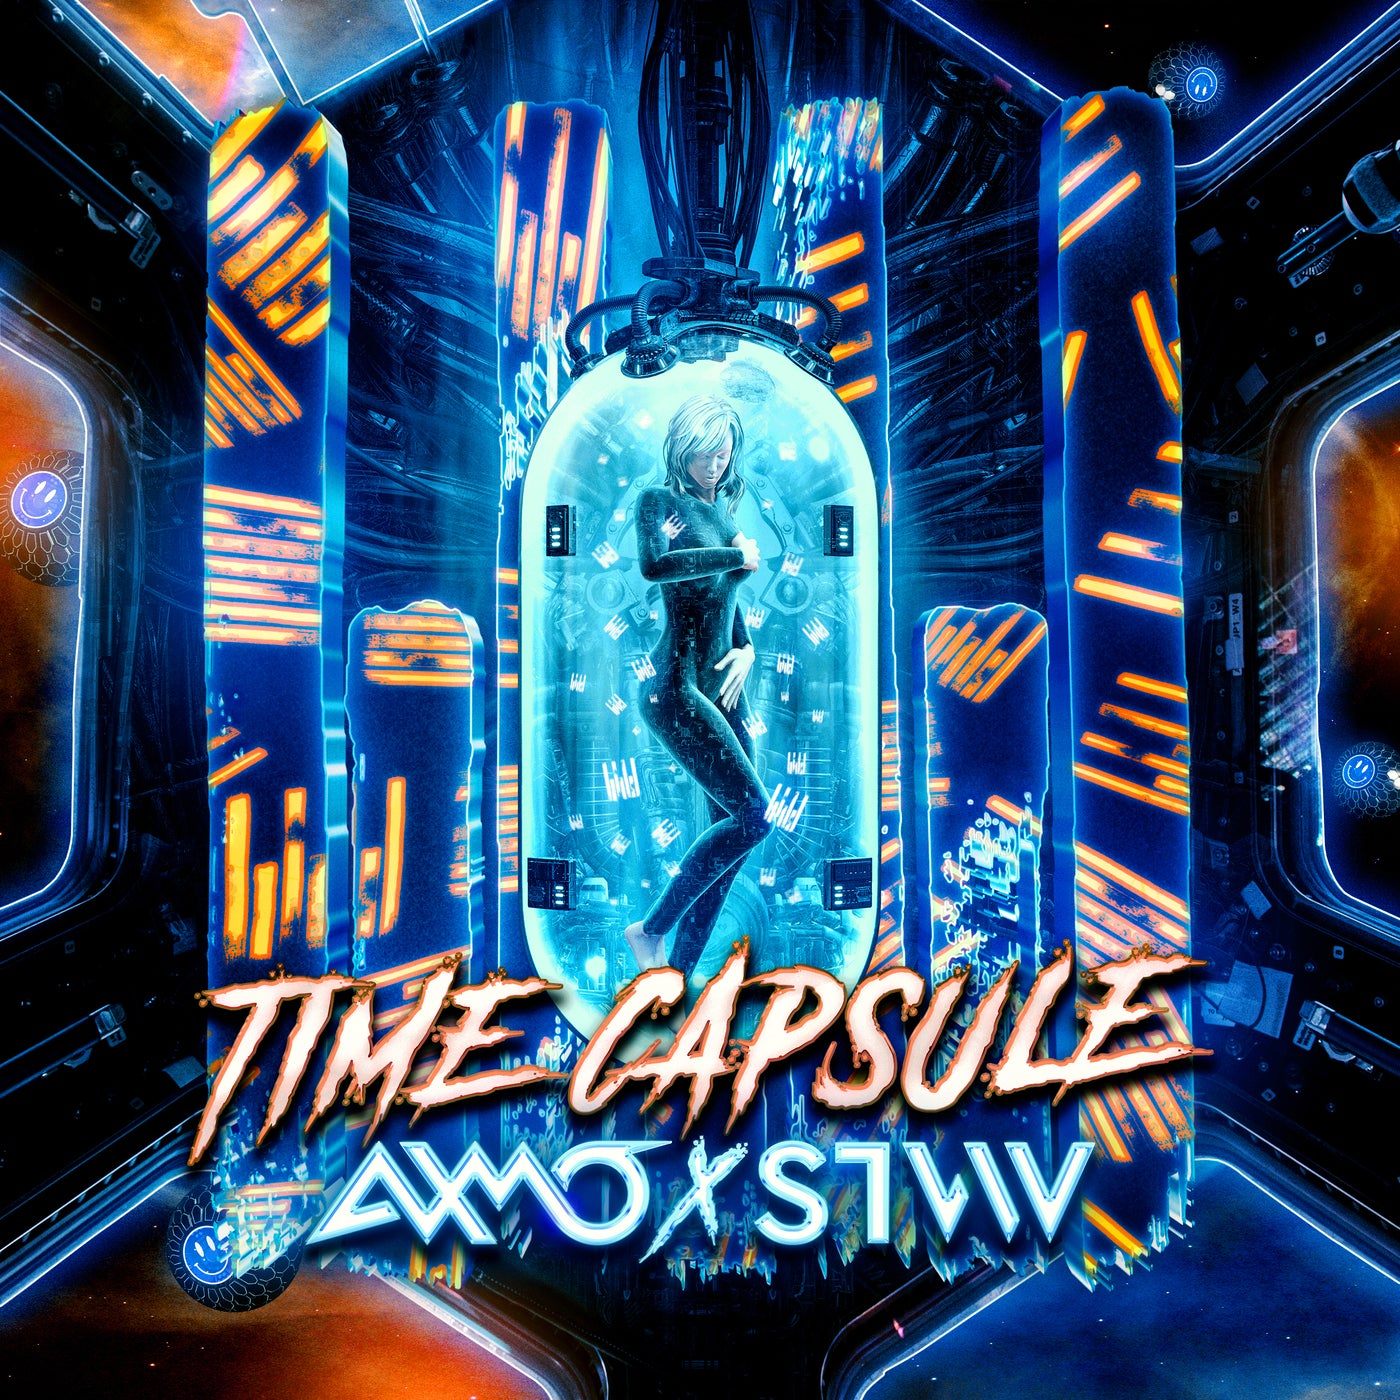 Time Capsule (Extended Mix)